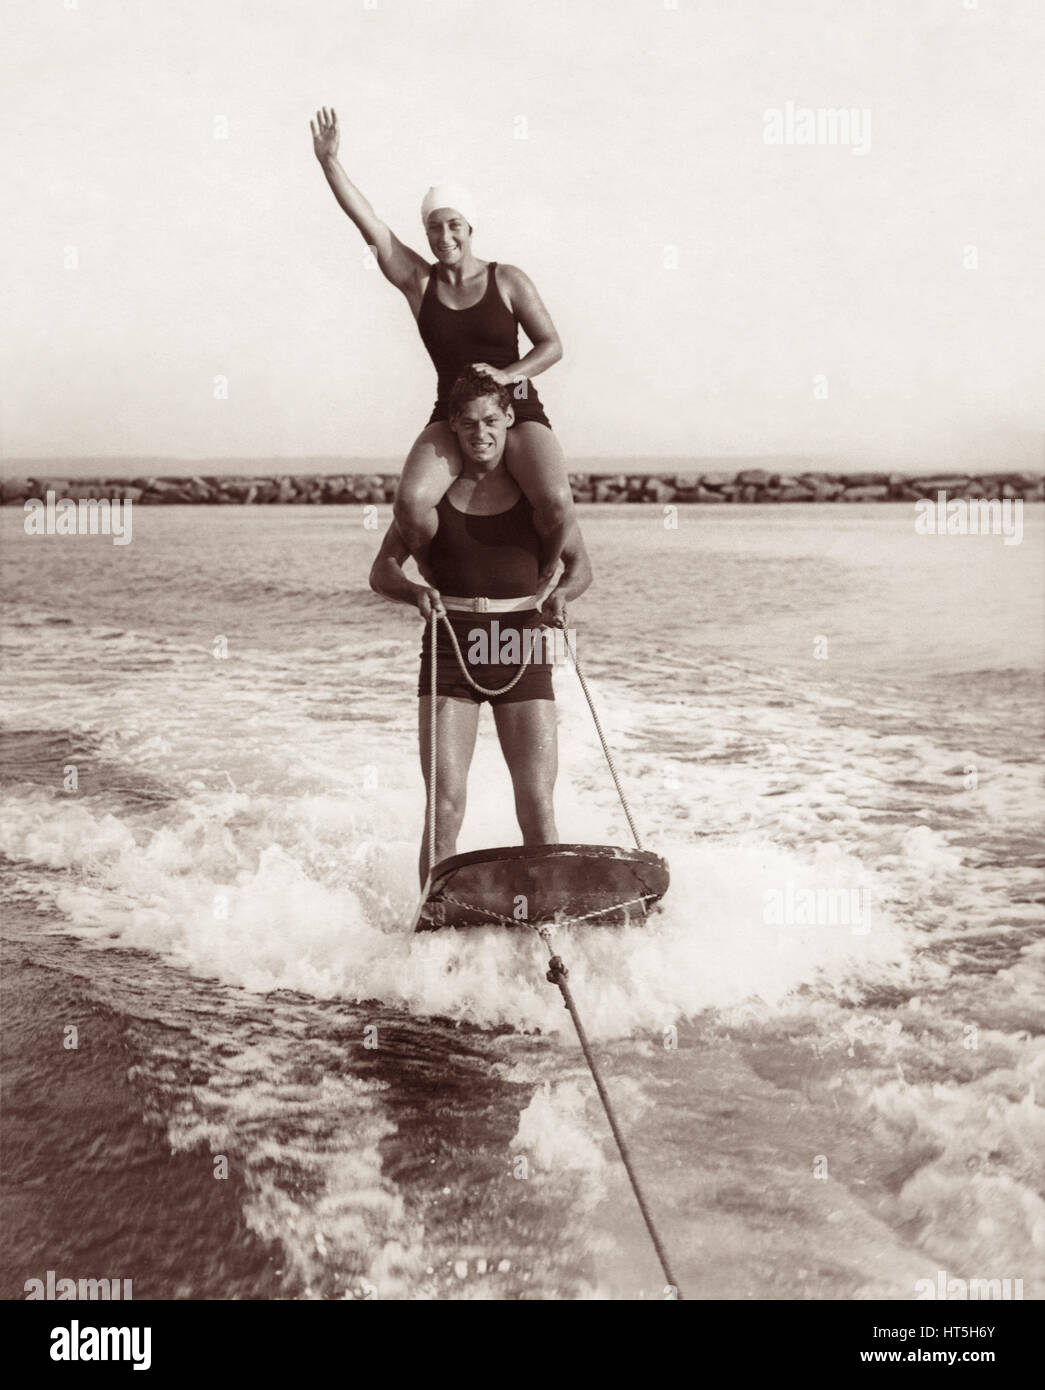 Olympic champions Johnny Weissmuller (Tarzan) and Helen Meany aquaplaning behind a motorboat in Long Island Sound - Stock Image